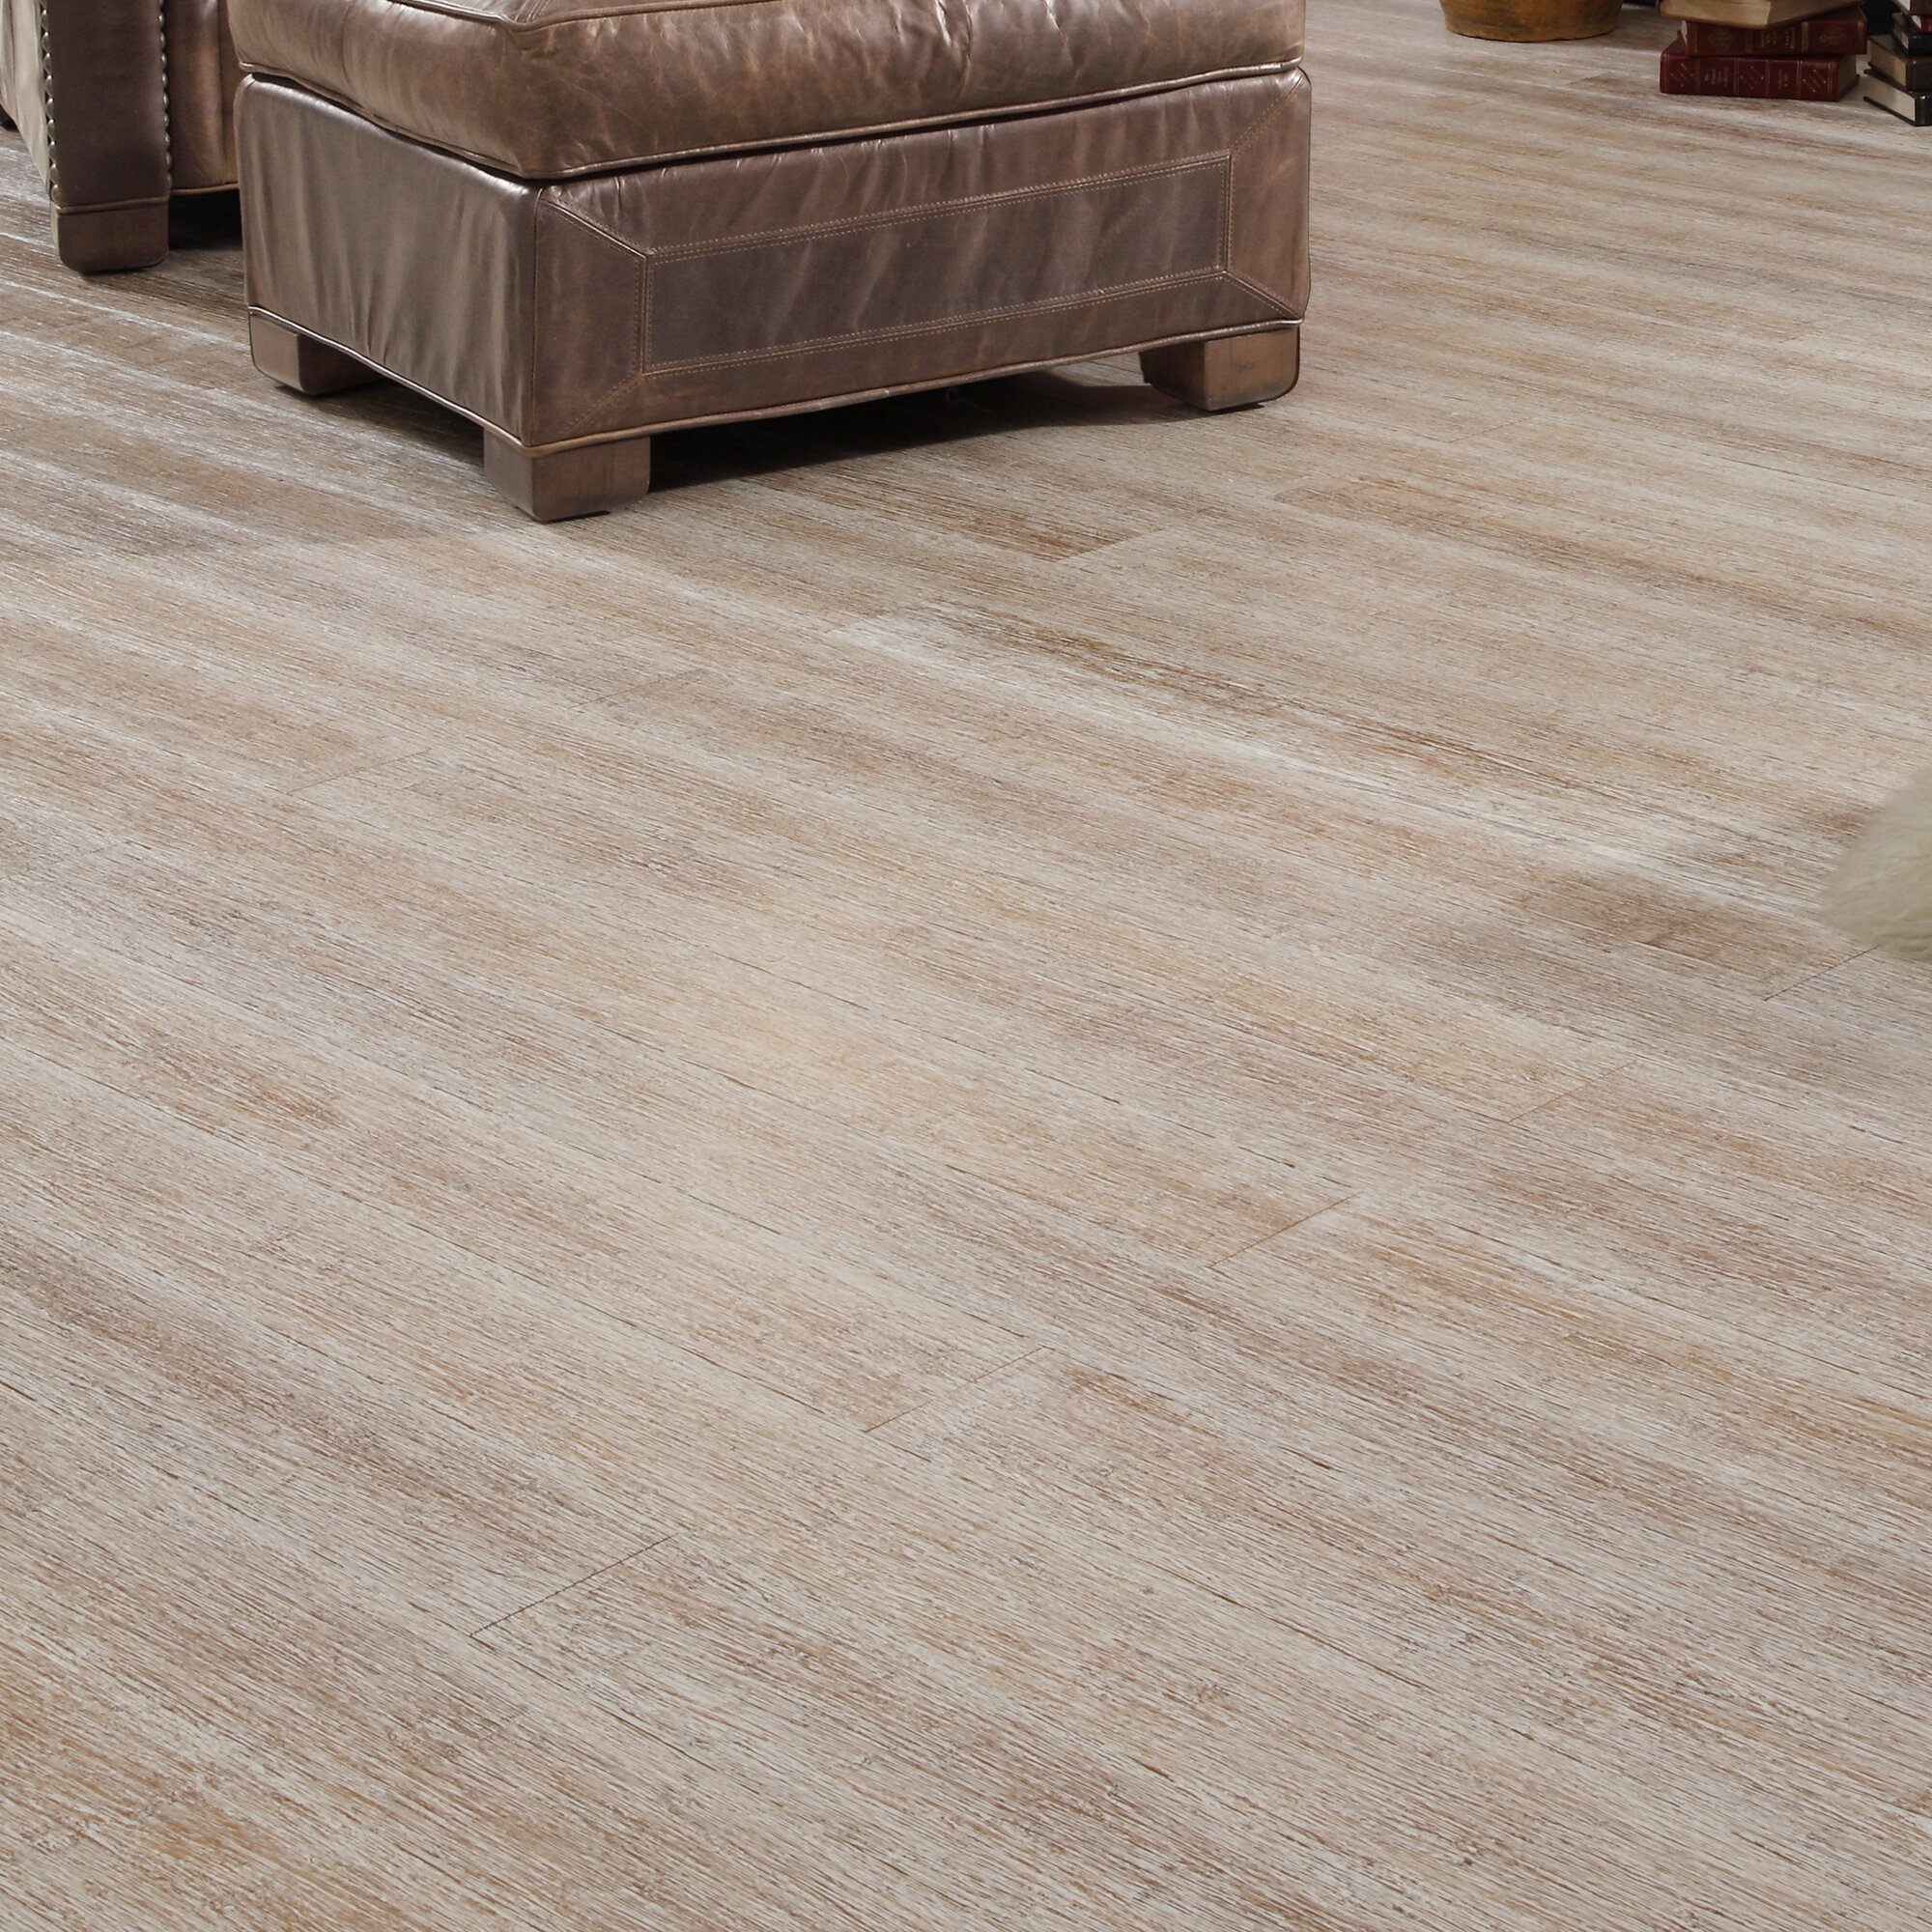 3 4 Hardwood Flooring bruce plymouth brown hickory 34 in thick x 2 14 in wide x random length solid hardwood flooring 20 sq ft case c0688 the home depot 4 34 Solid Strand Woven Bamboo Flooring In Winter Wheat